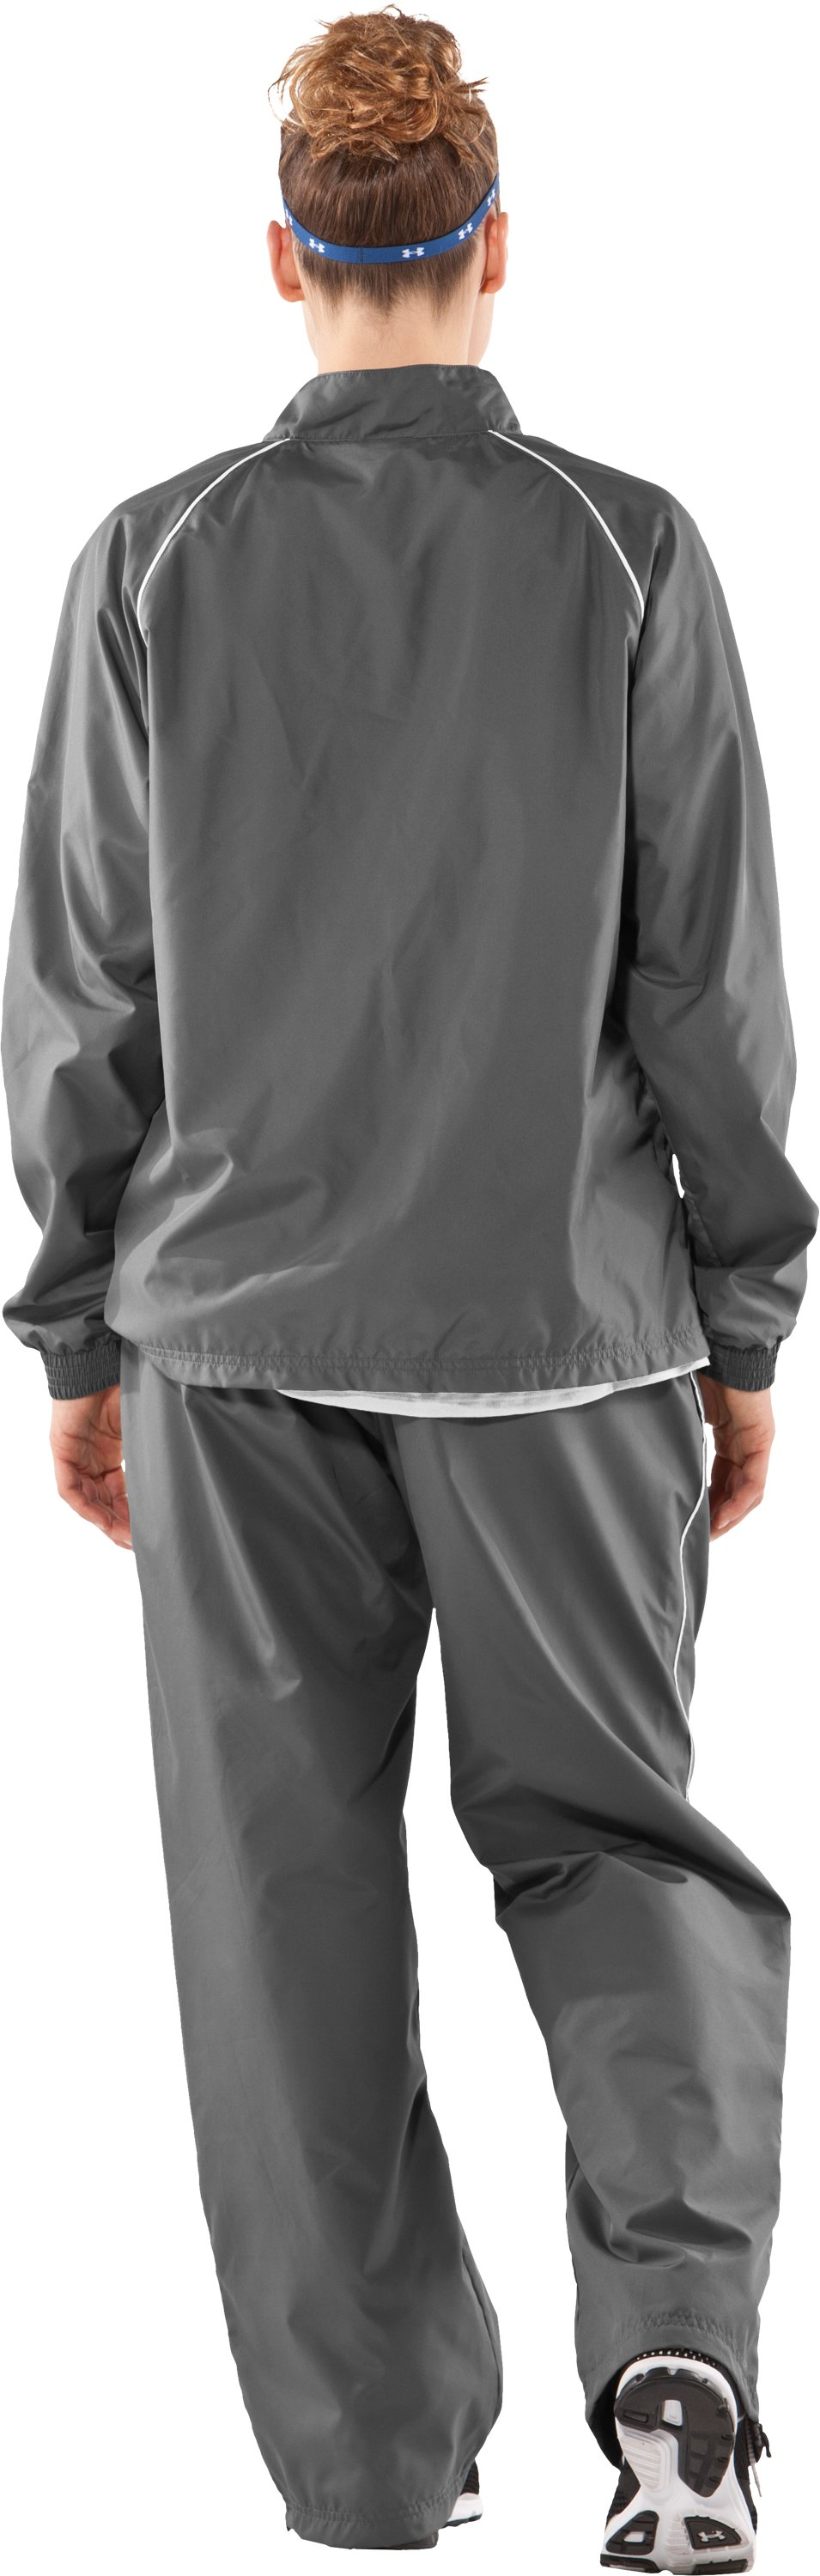 Women's Advance Woven Warm-Up Jacket, Graphite, Back